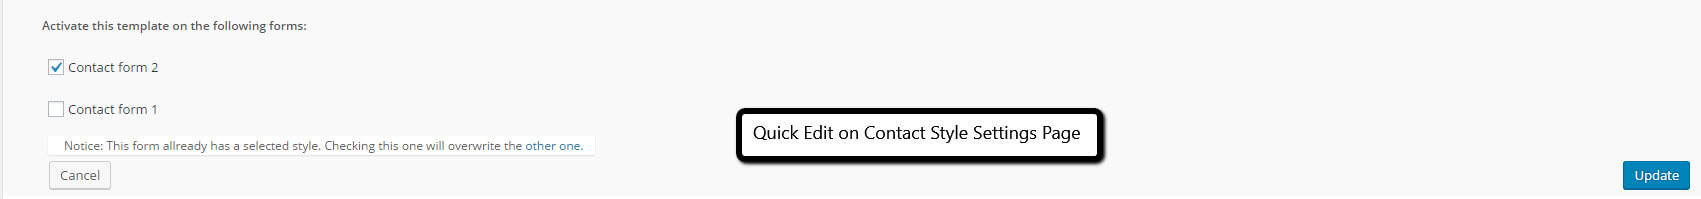 Quick Edit on the Contact Style Settings Page, which allows Style Apply on various forms in a few seconds away.